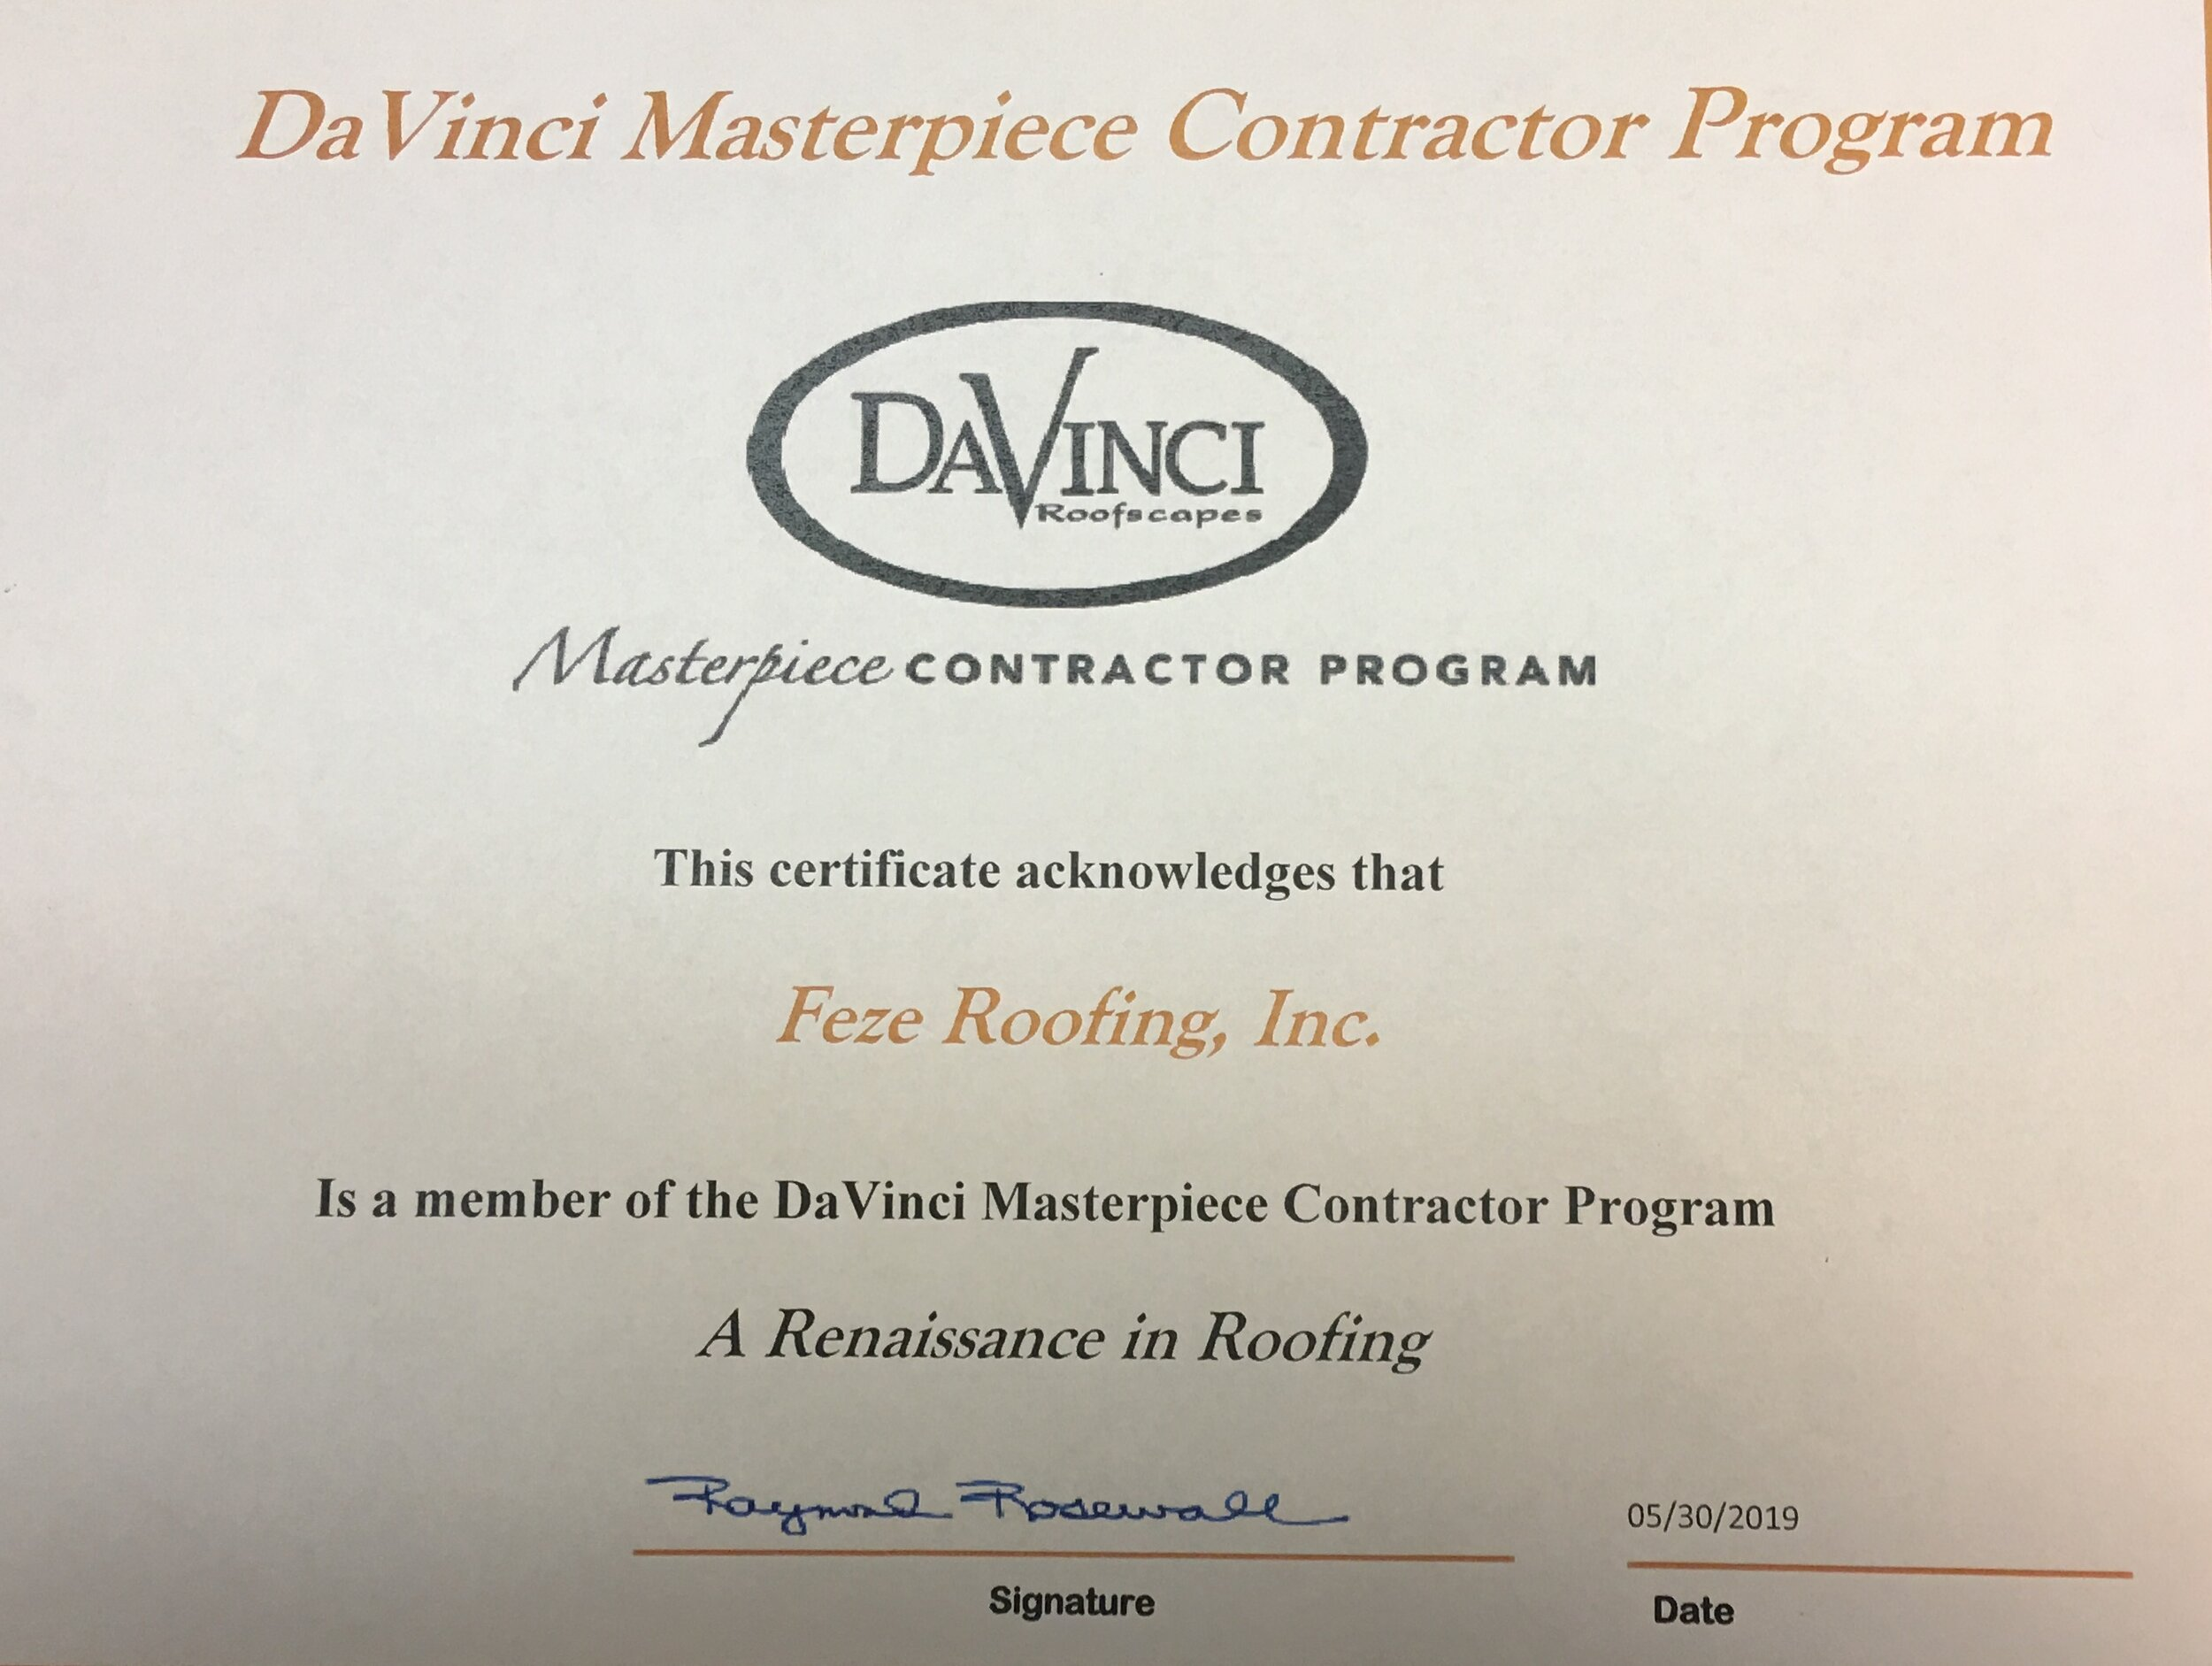 DaVinci Masterpiece Contractors - Feze Roofing, Inc.© is pleased to announce that we have been recognized as part of the DaVinci Roofscapes © Masterpiece Contractor Program.